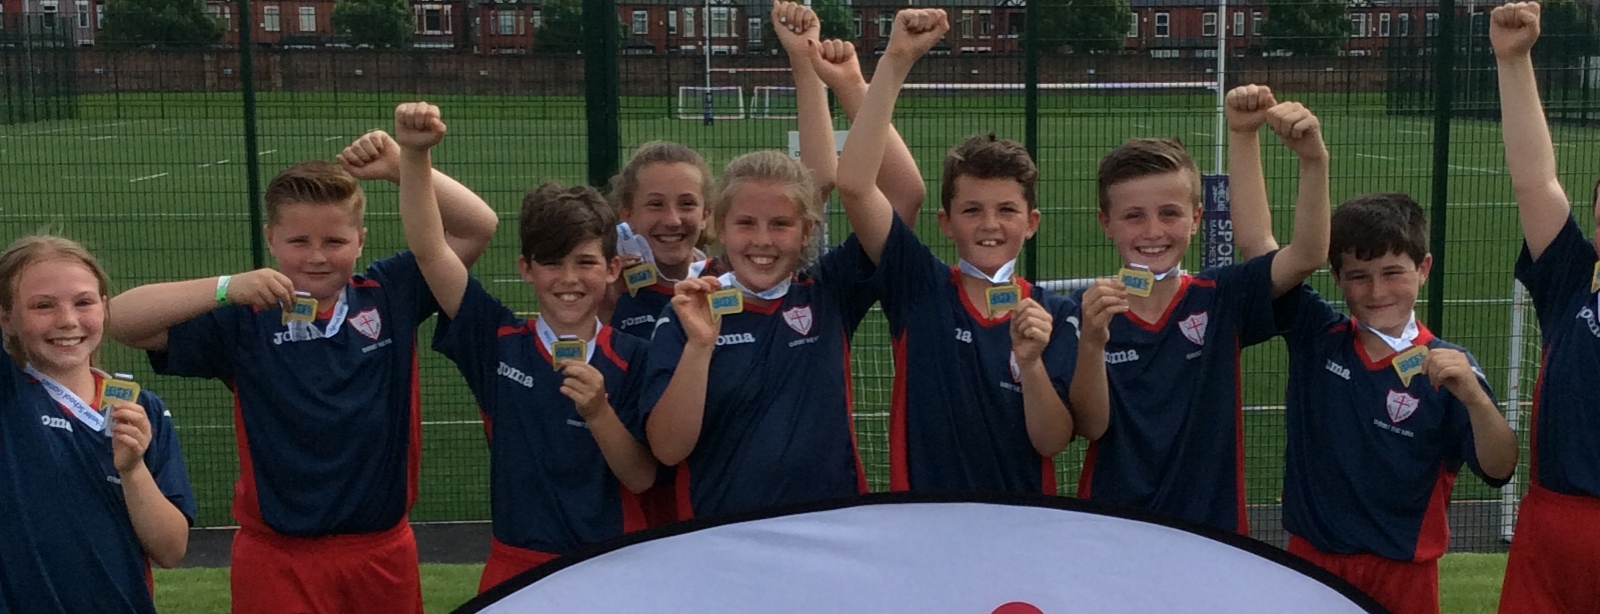 GM Games 2017 Rounders Champions